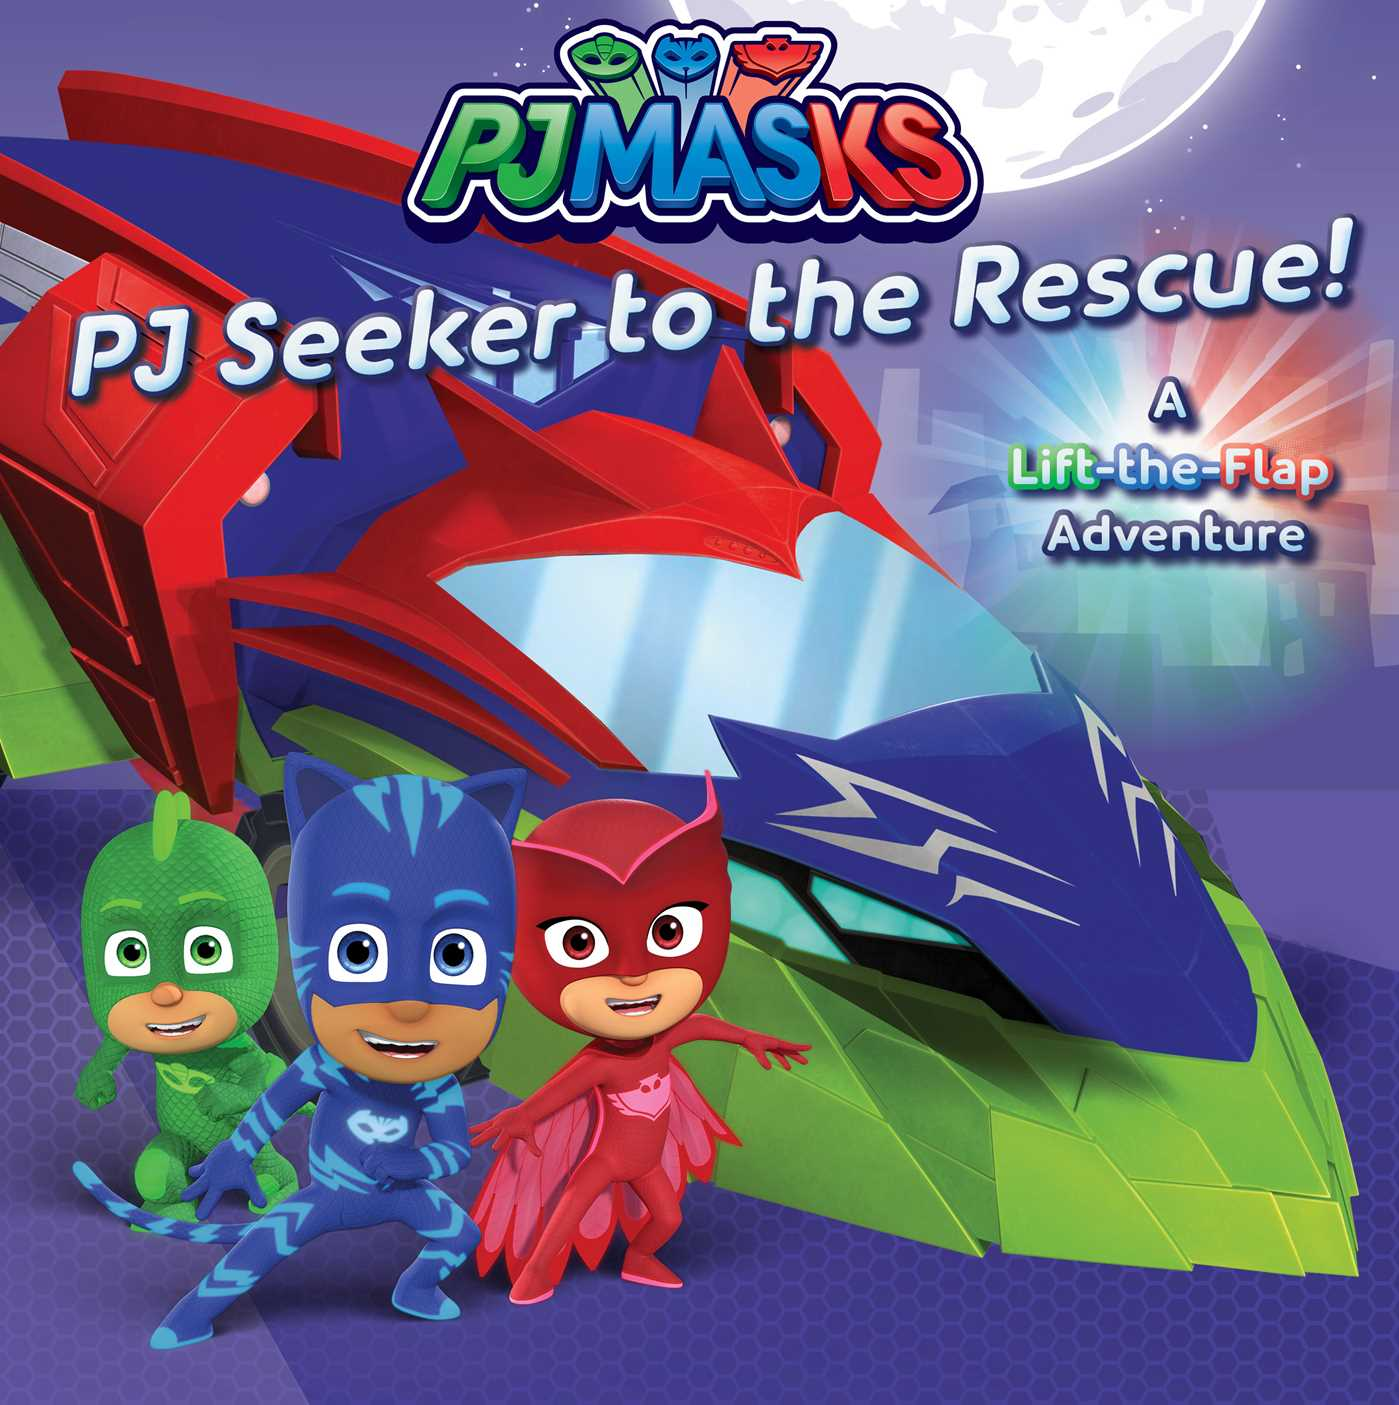 PJ Seeker to the Rescue!: A Lift-the-Flap Adventure